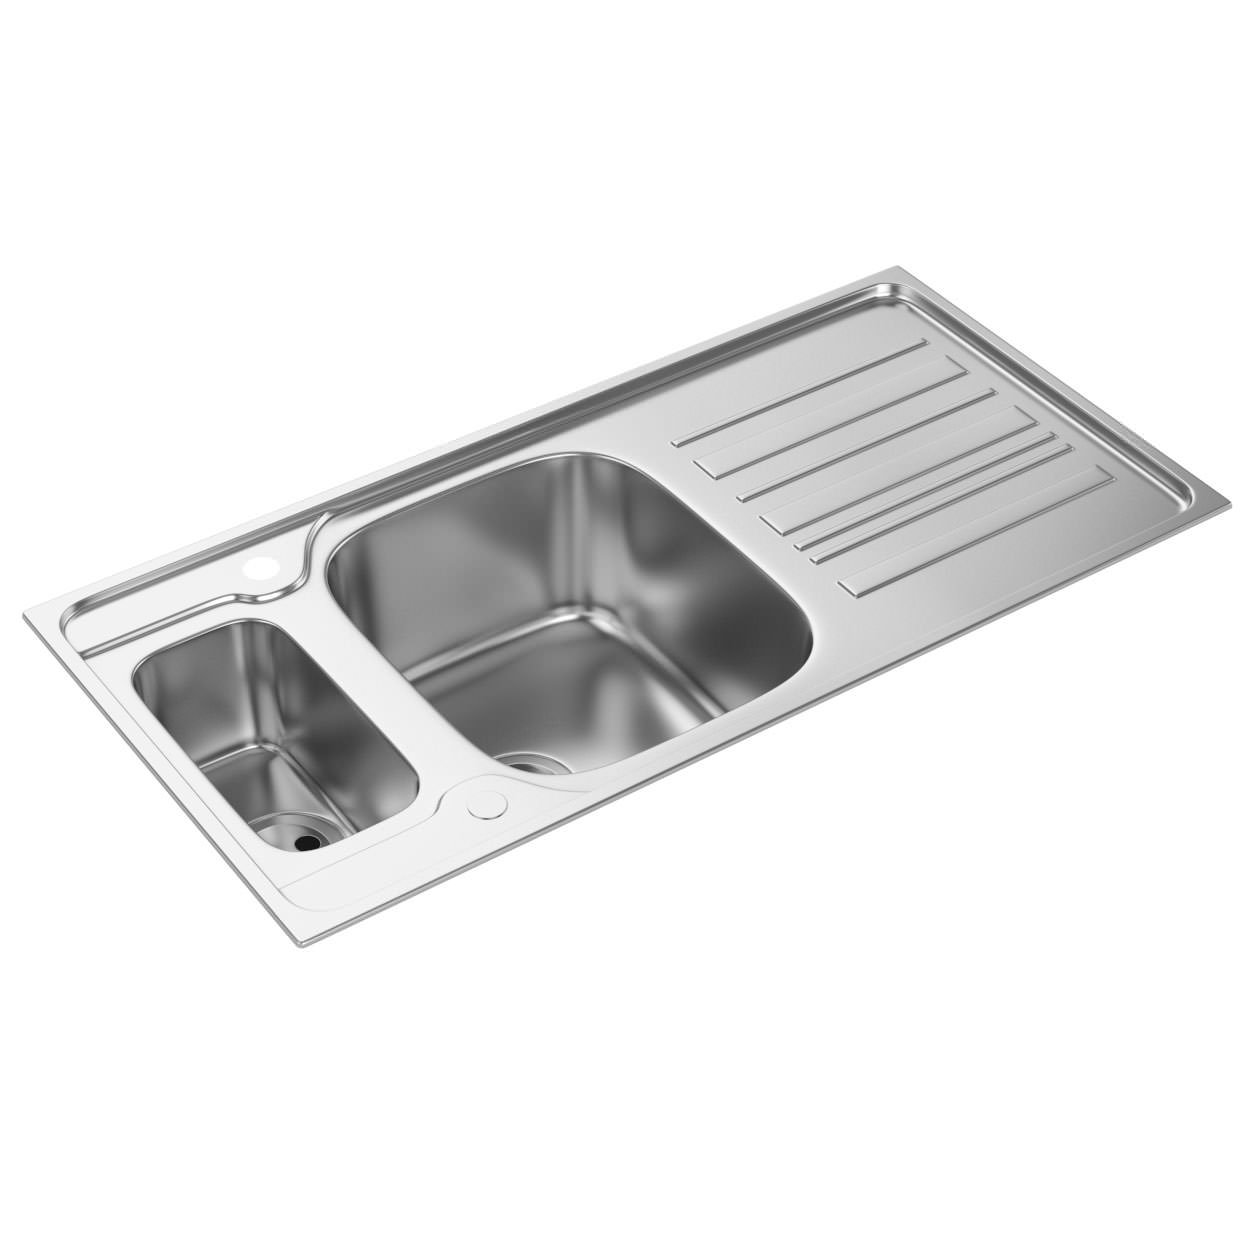 abode kyte 1.5 offset bowl stainless steel kitchen sink with drainer